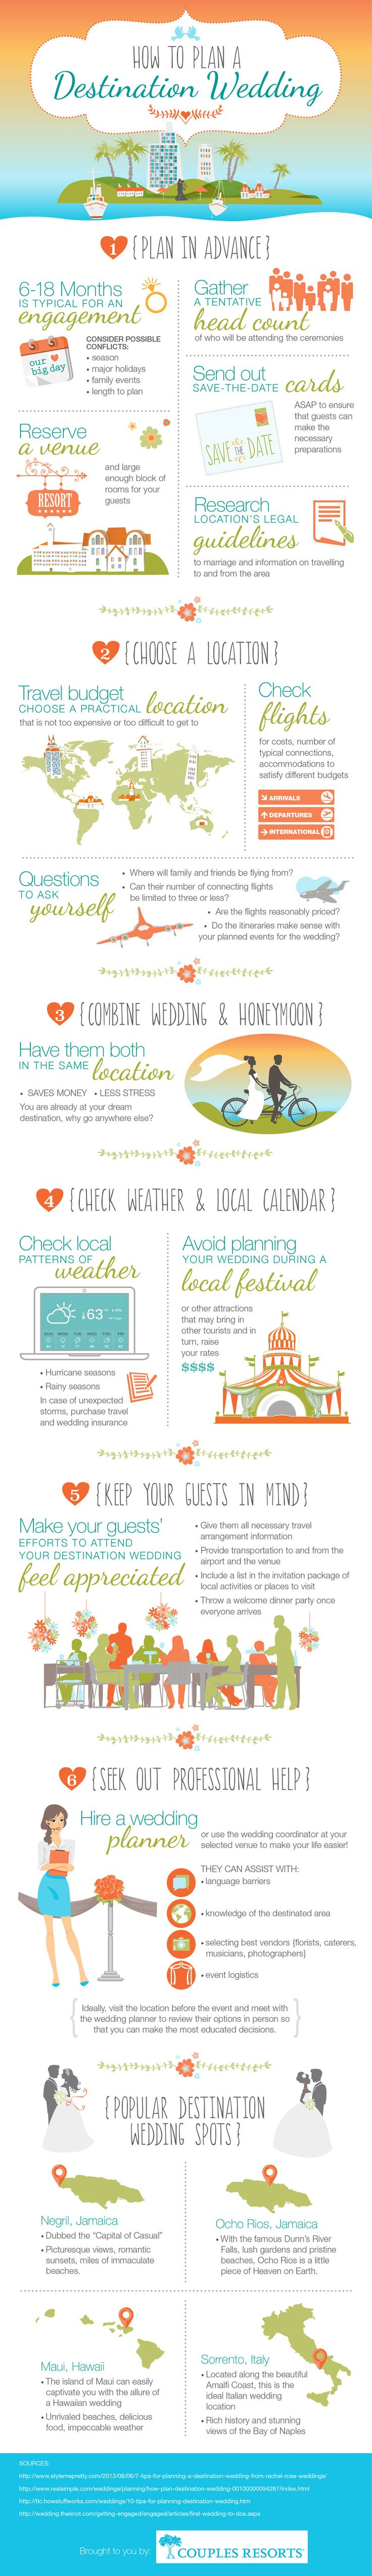 With the weather outside so frightful, we have had destination weddings on our minds a lot. Are you considering a destination wedding? Here are a few things to consider outlined in this infographic by Couples Resorts, premiere destination wedding resorts in the Caribbean.